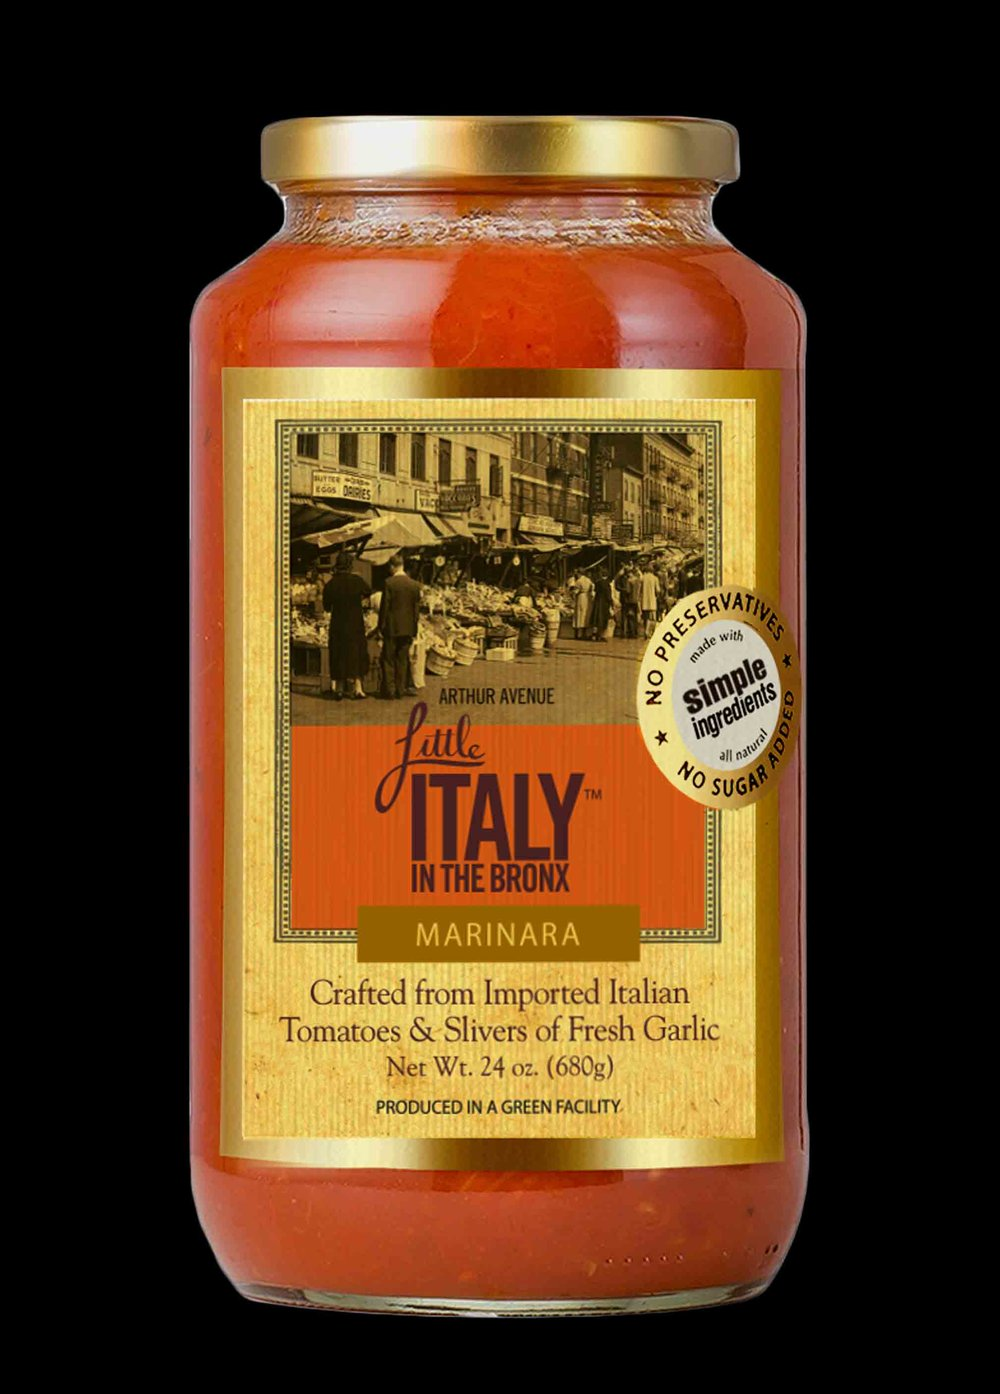 LittleItaly_Marinara_Final.jpg